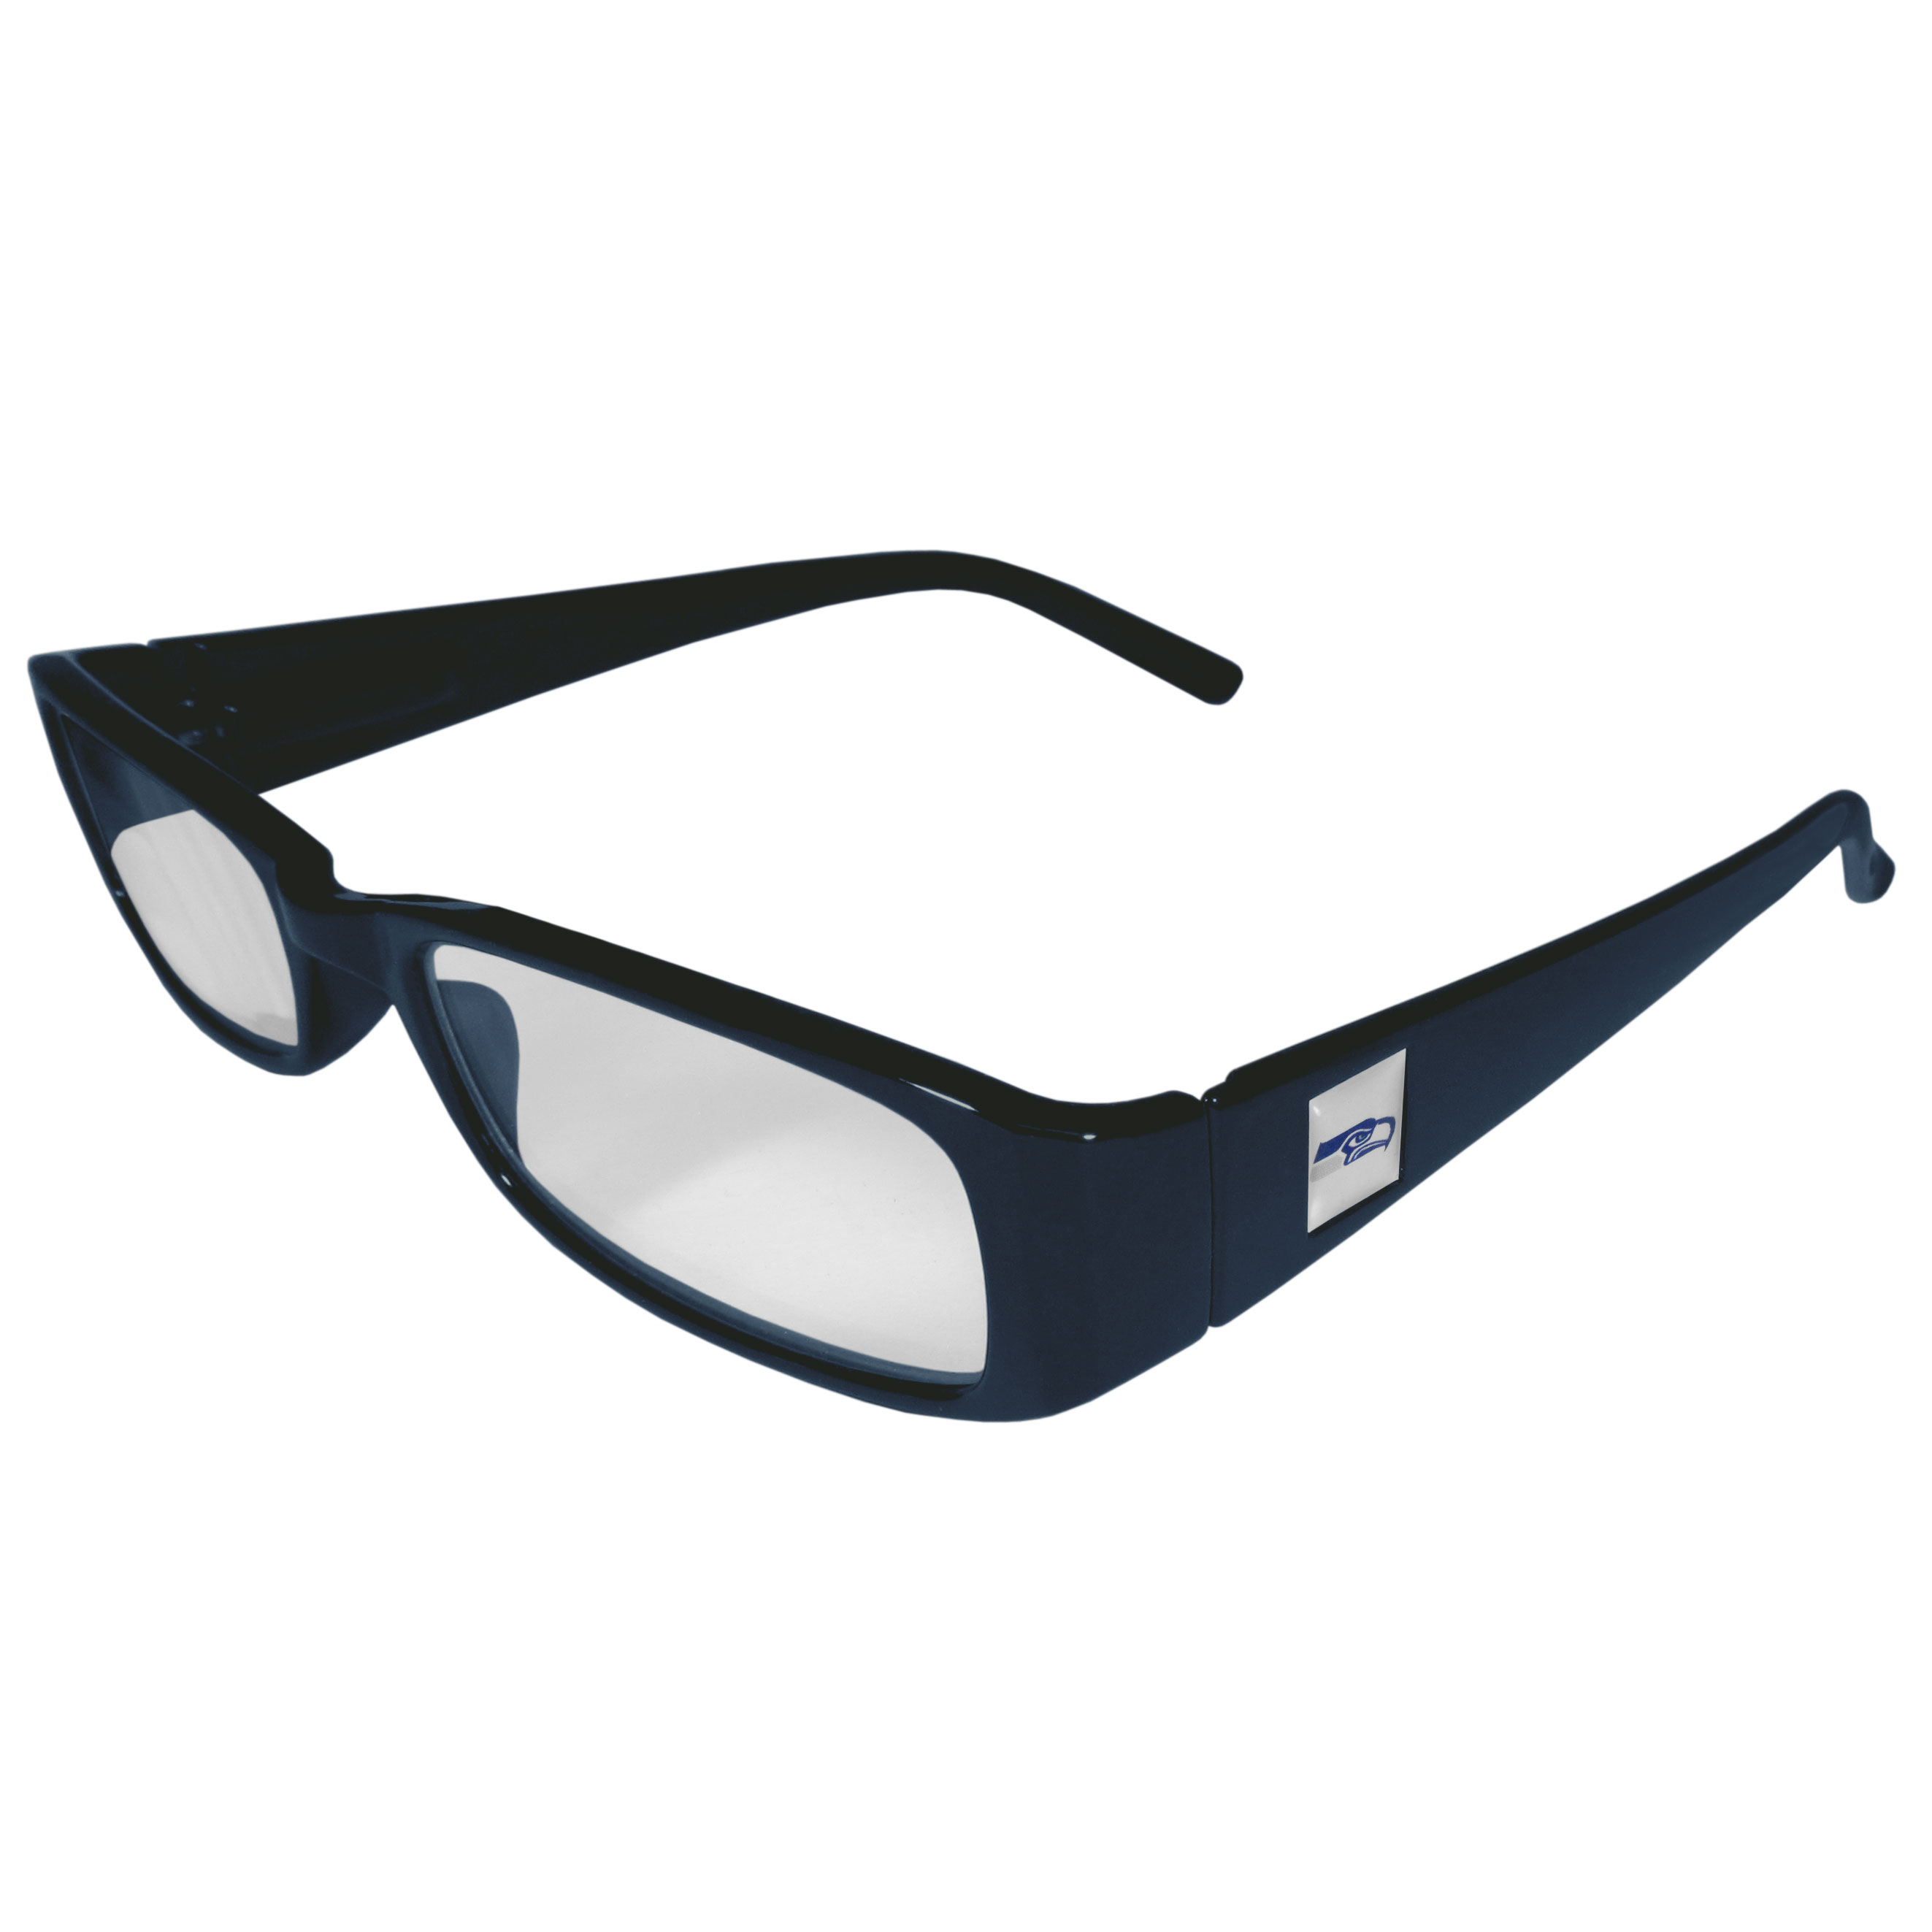 "Seahawks NFL Reading Glasses +1.25 - ""Our Seattle Seahawks NFL readers glasses are 5.25"""" wide with 5.5"""" arms with team colored frames featuring the team logo on each arm. Power +1.25"""